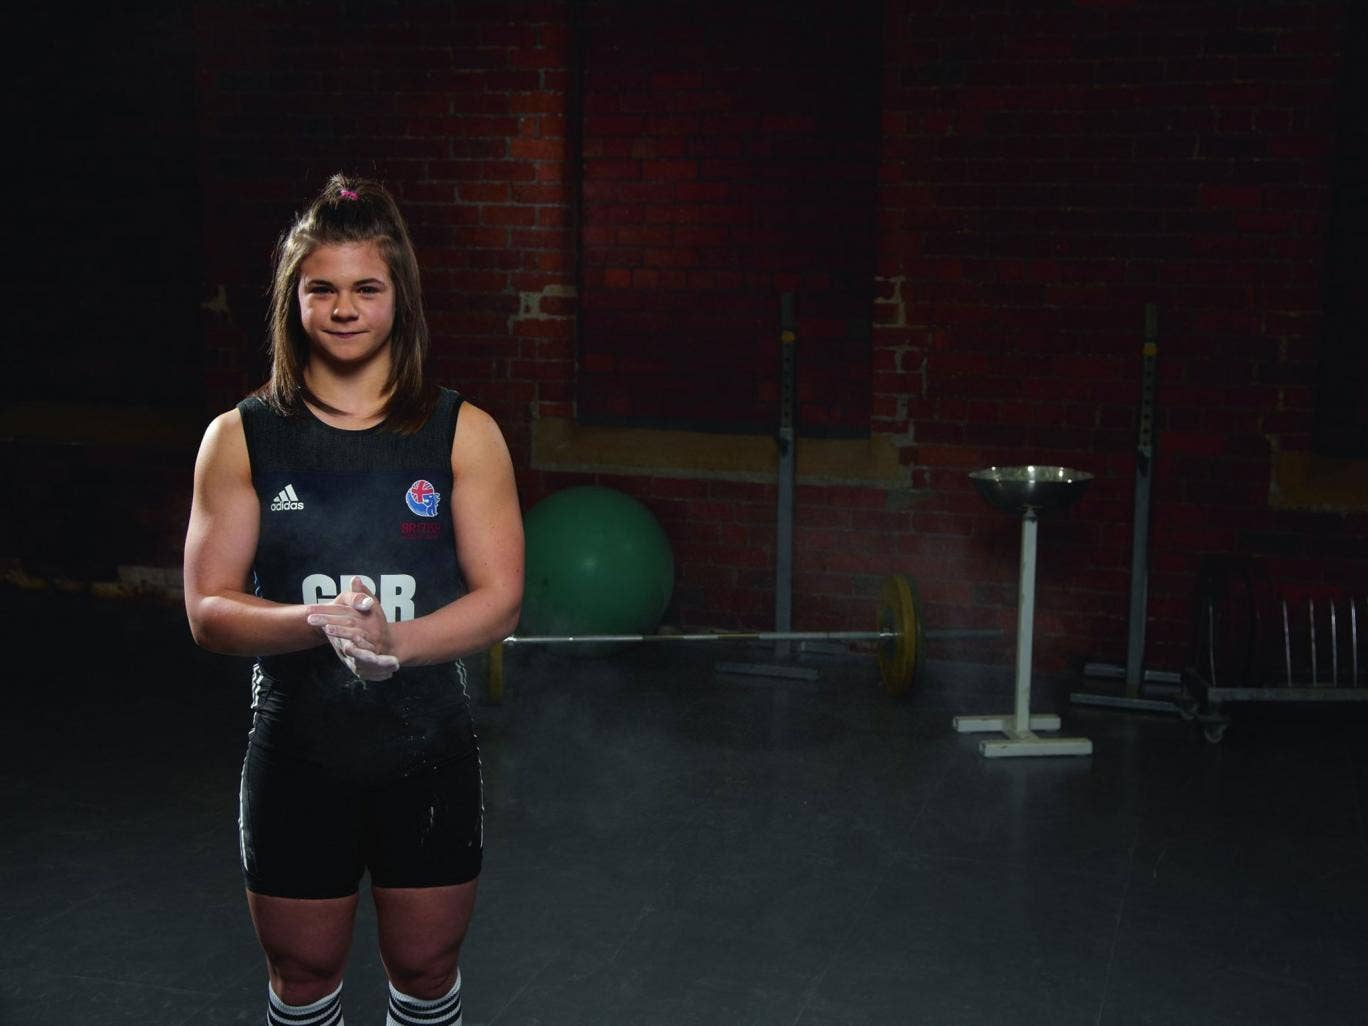 Lift-off: Rebekah Tiler is aiming for a top-10 result in Rio in 2016, then gold at Tokyo 2020